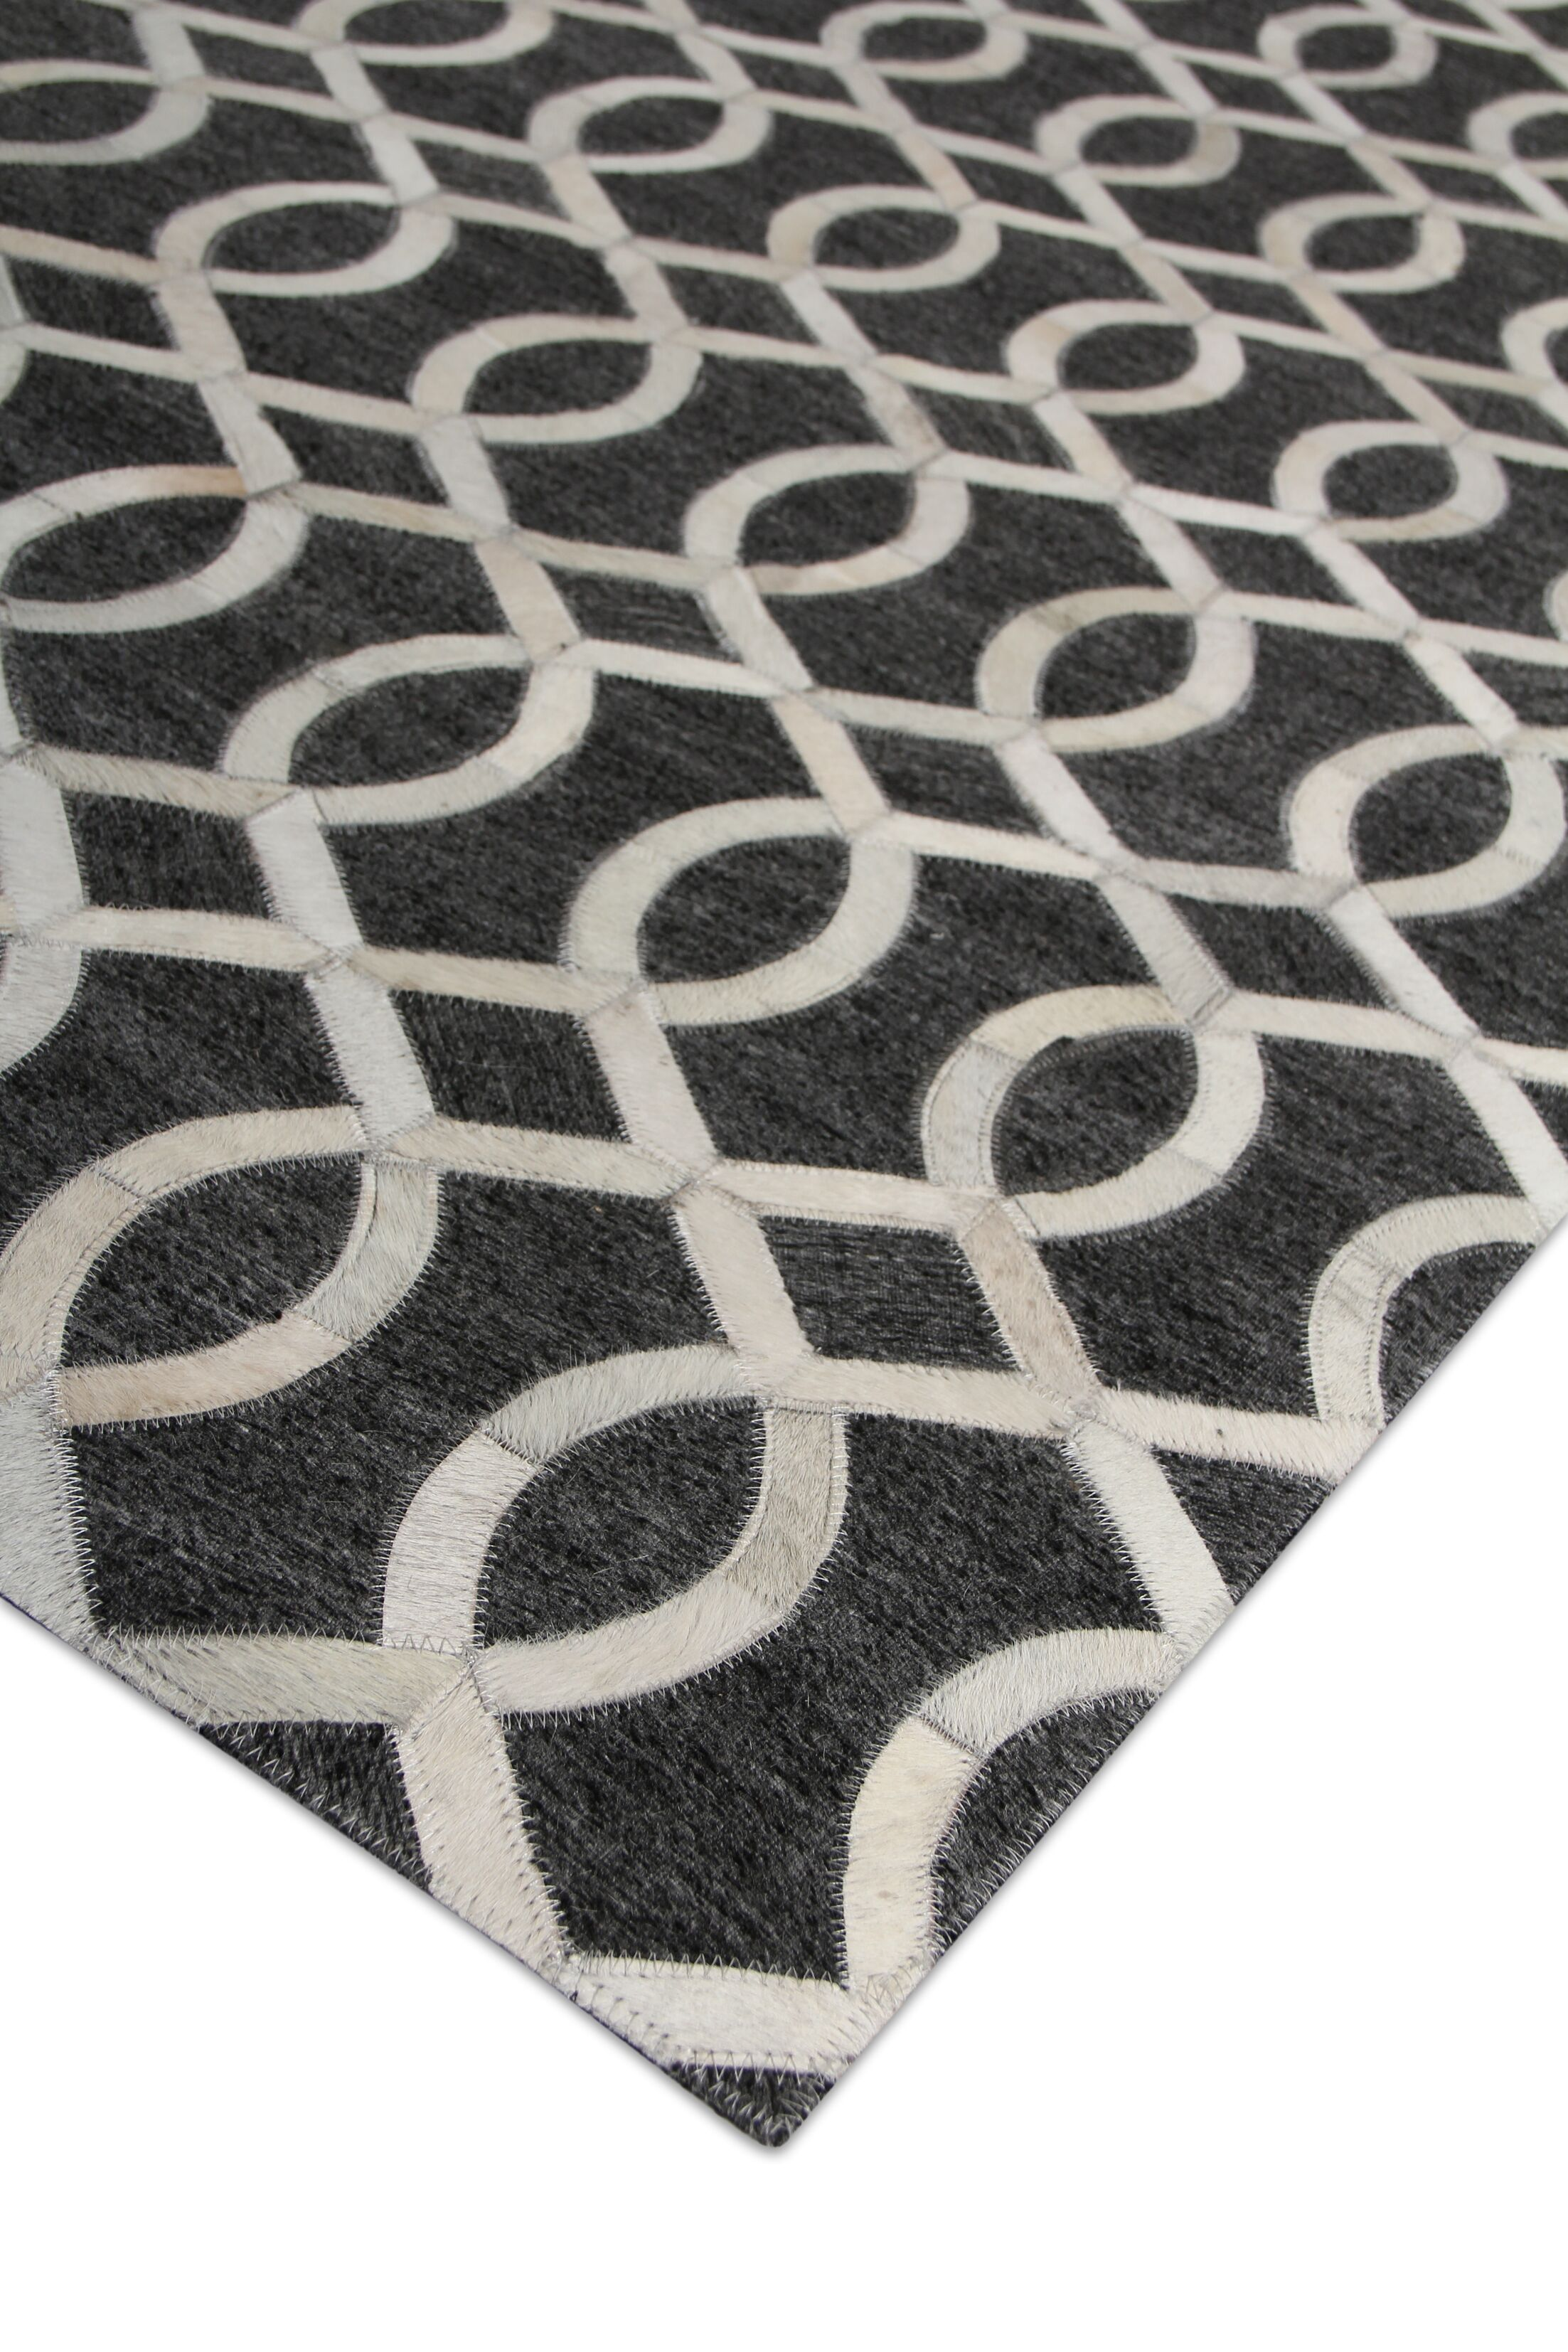 Berlin Charcoal/Ivory Area Rug Rug Size: Rectangle 8' x 11'